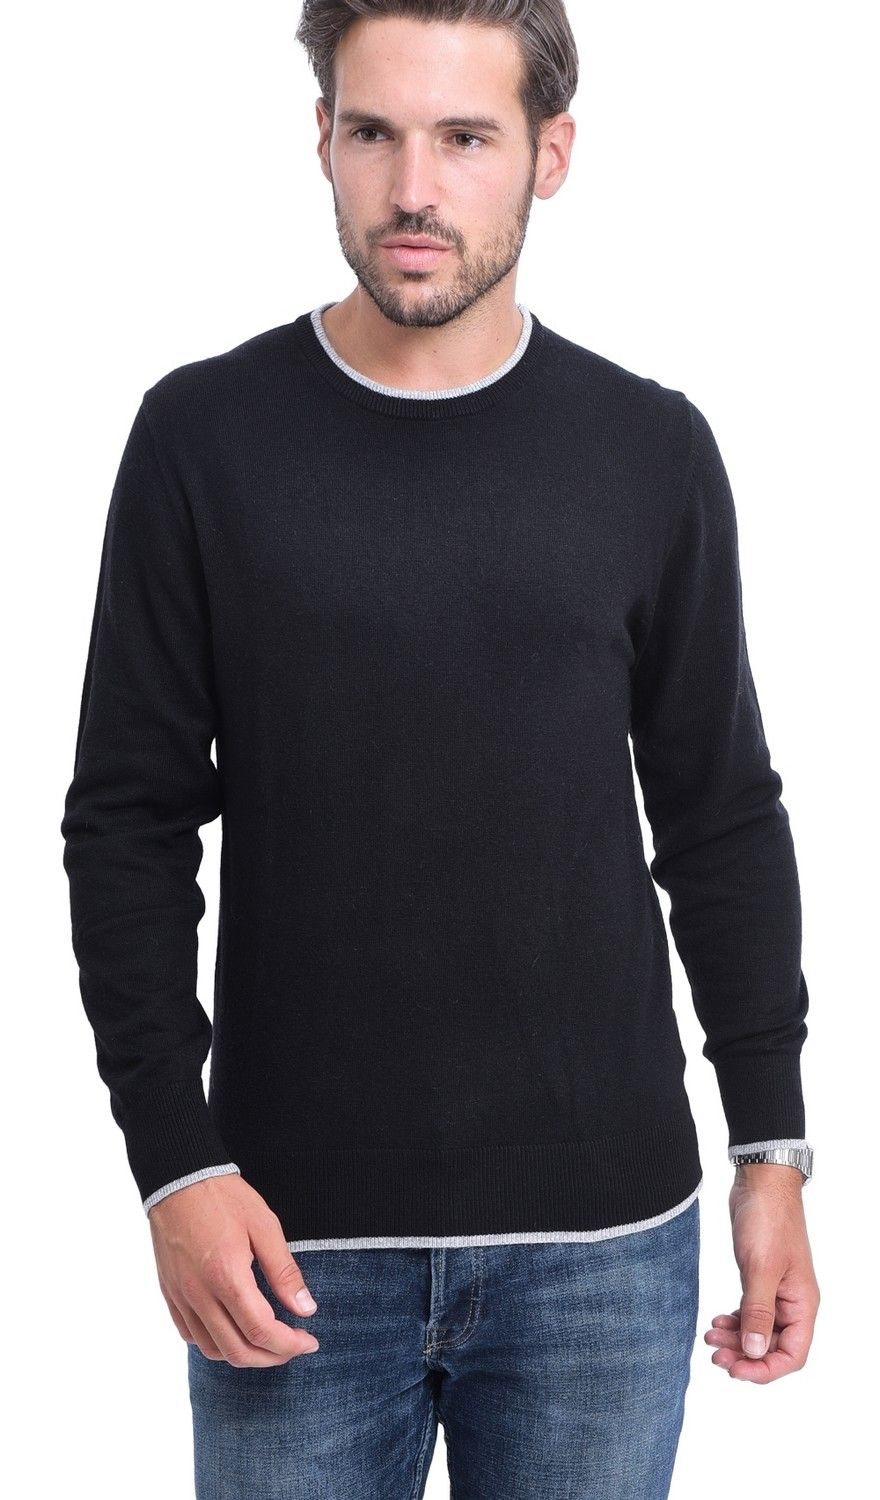 C&JO Round Neck Two-tone Sweater in Black